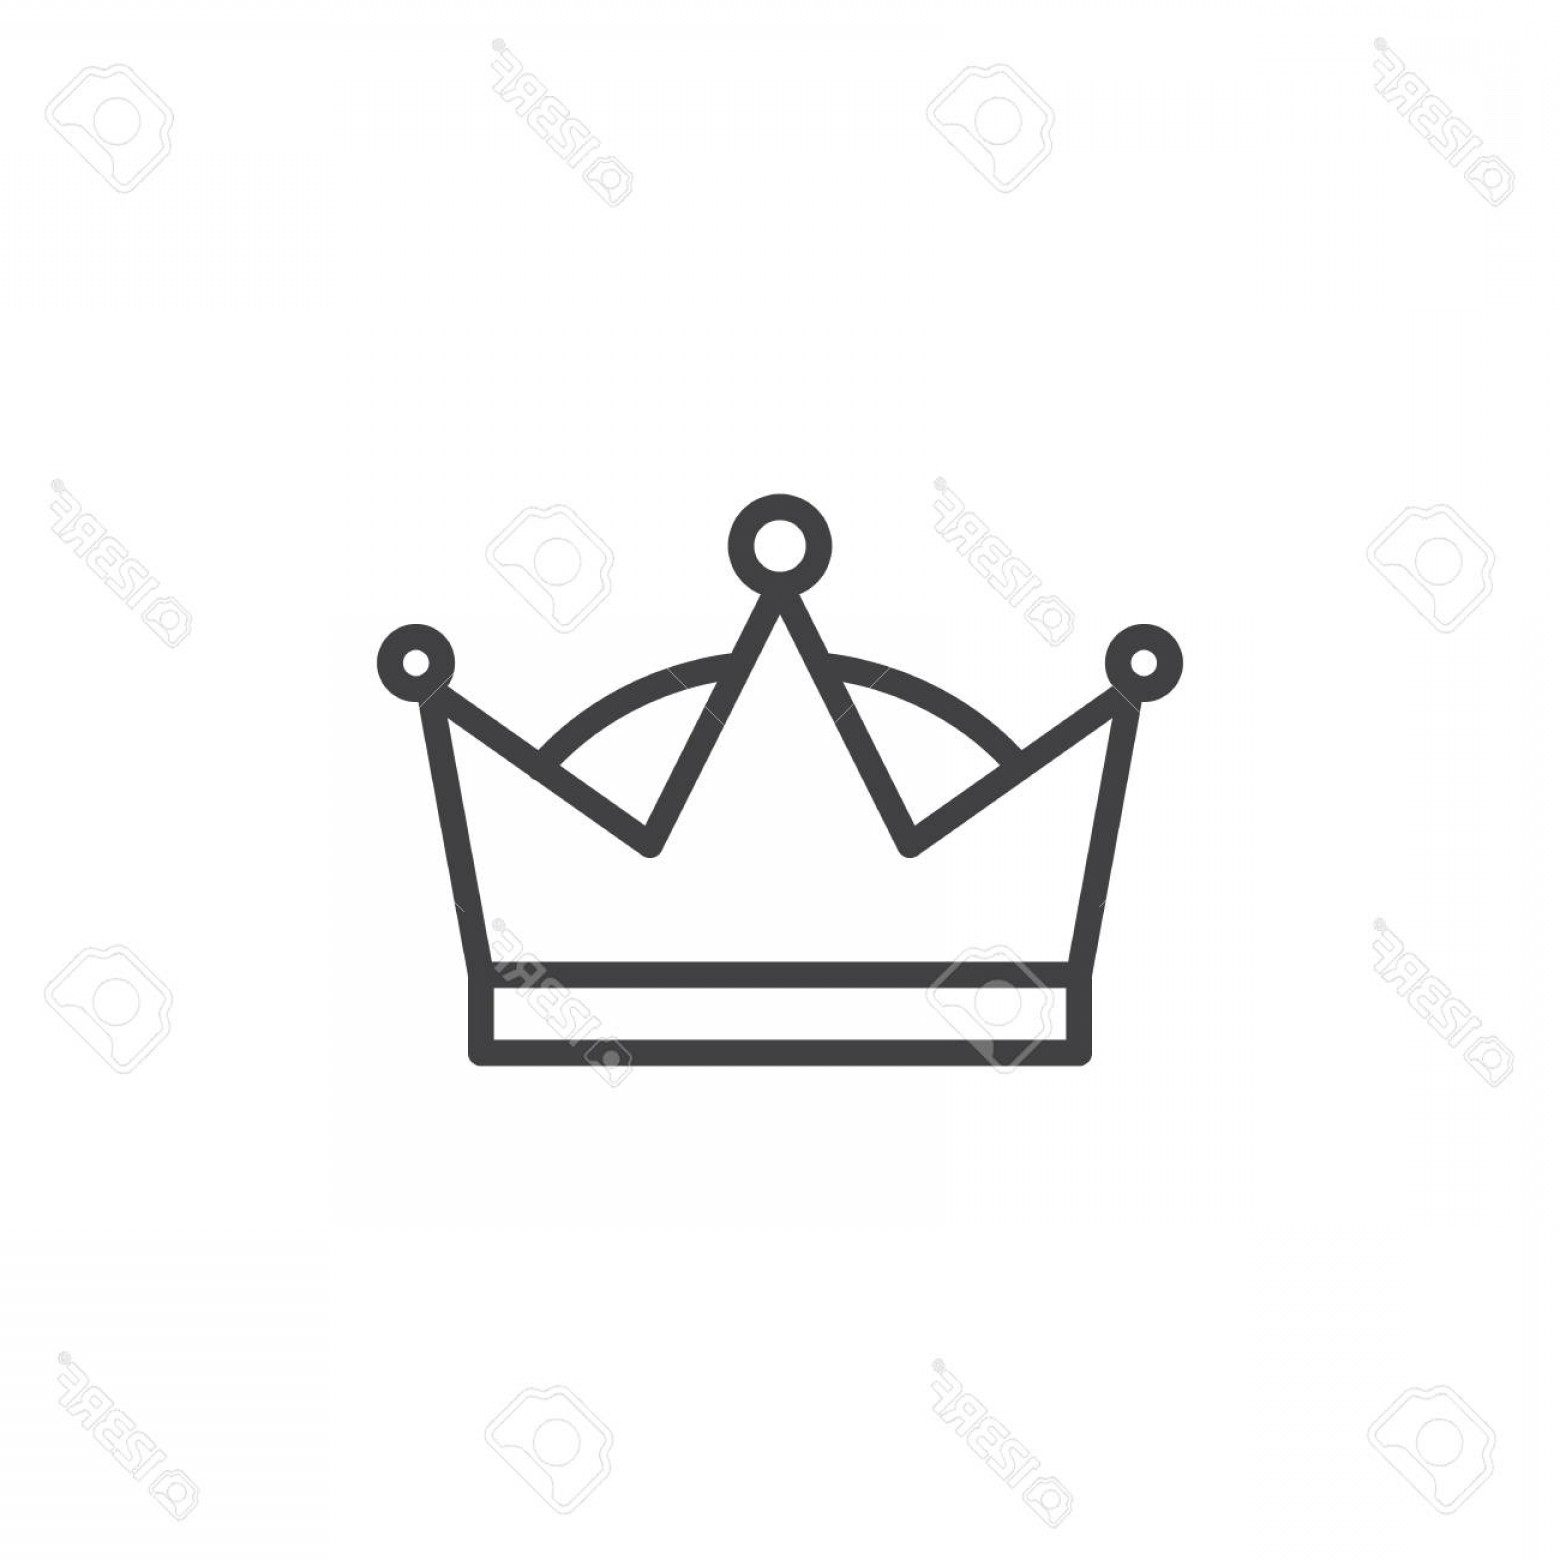 Crown Vector Clip Art: Photostock Vector Queen Crown Icon Outline Sign Linear Style Clip Art Design Illustration